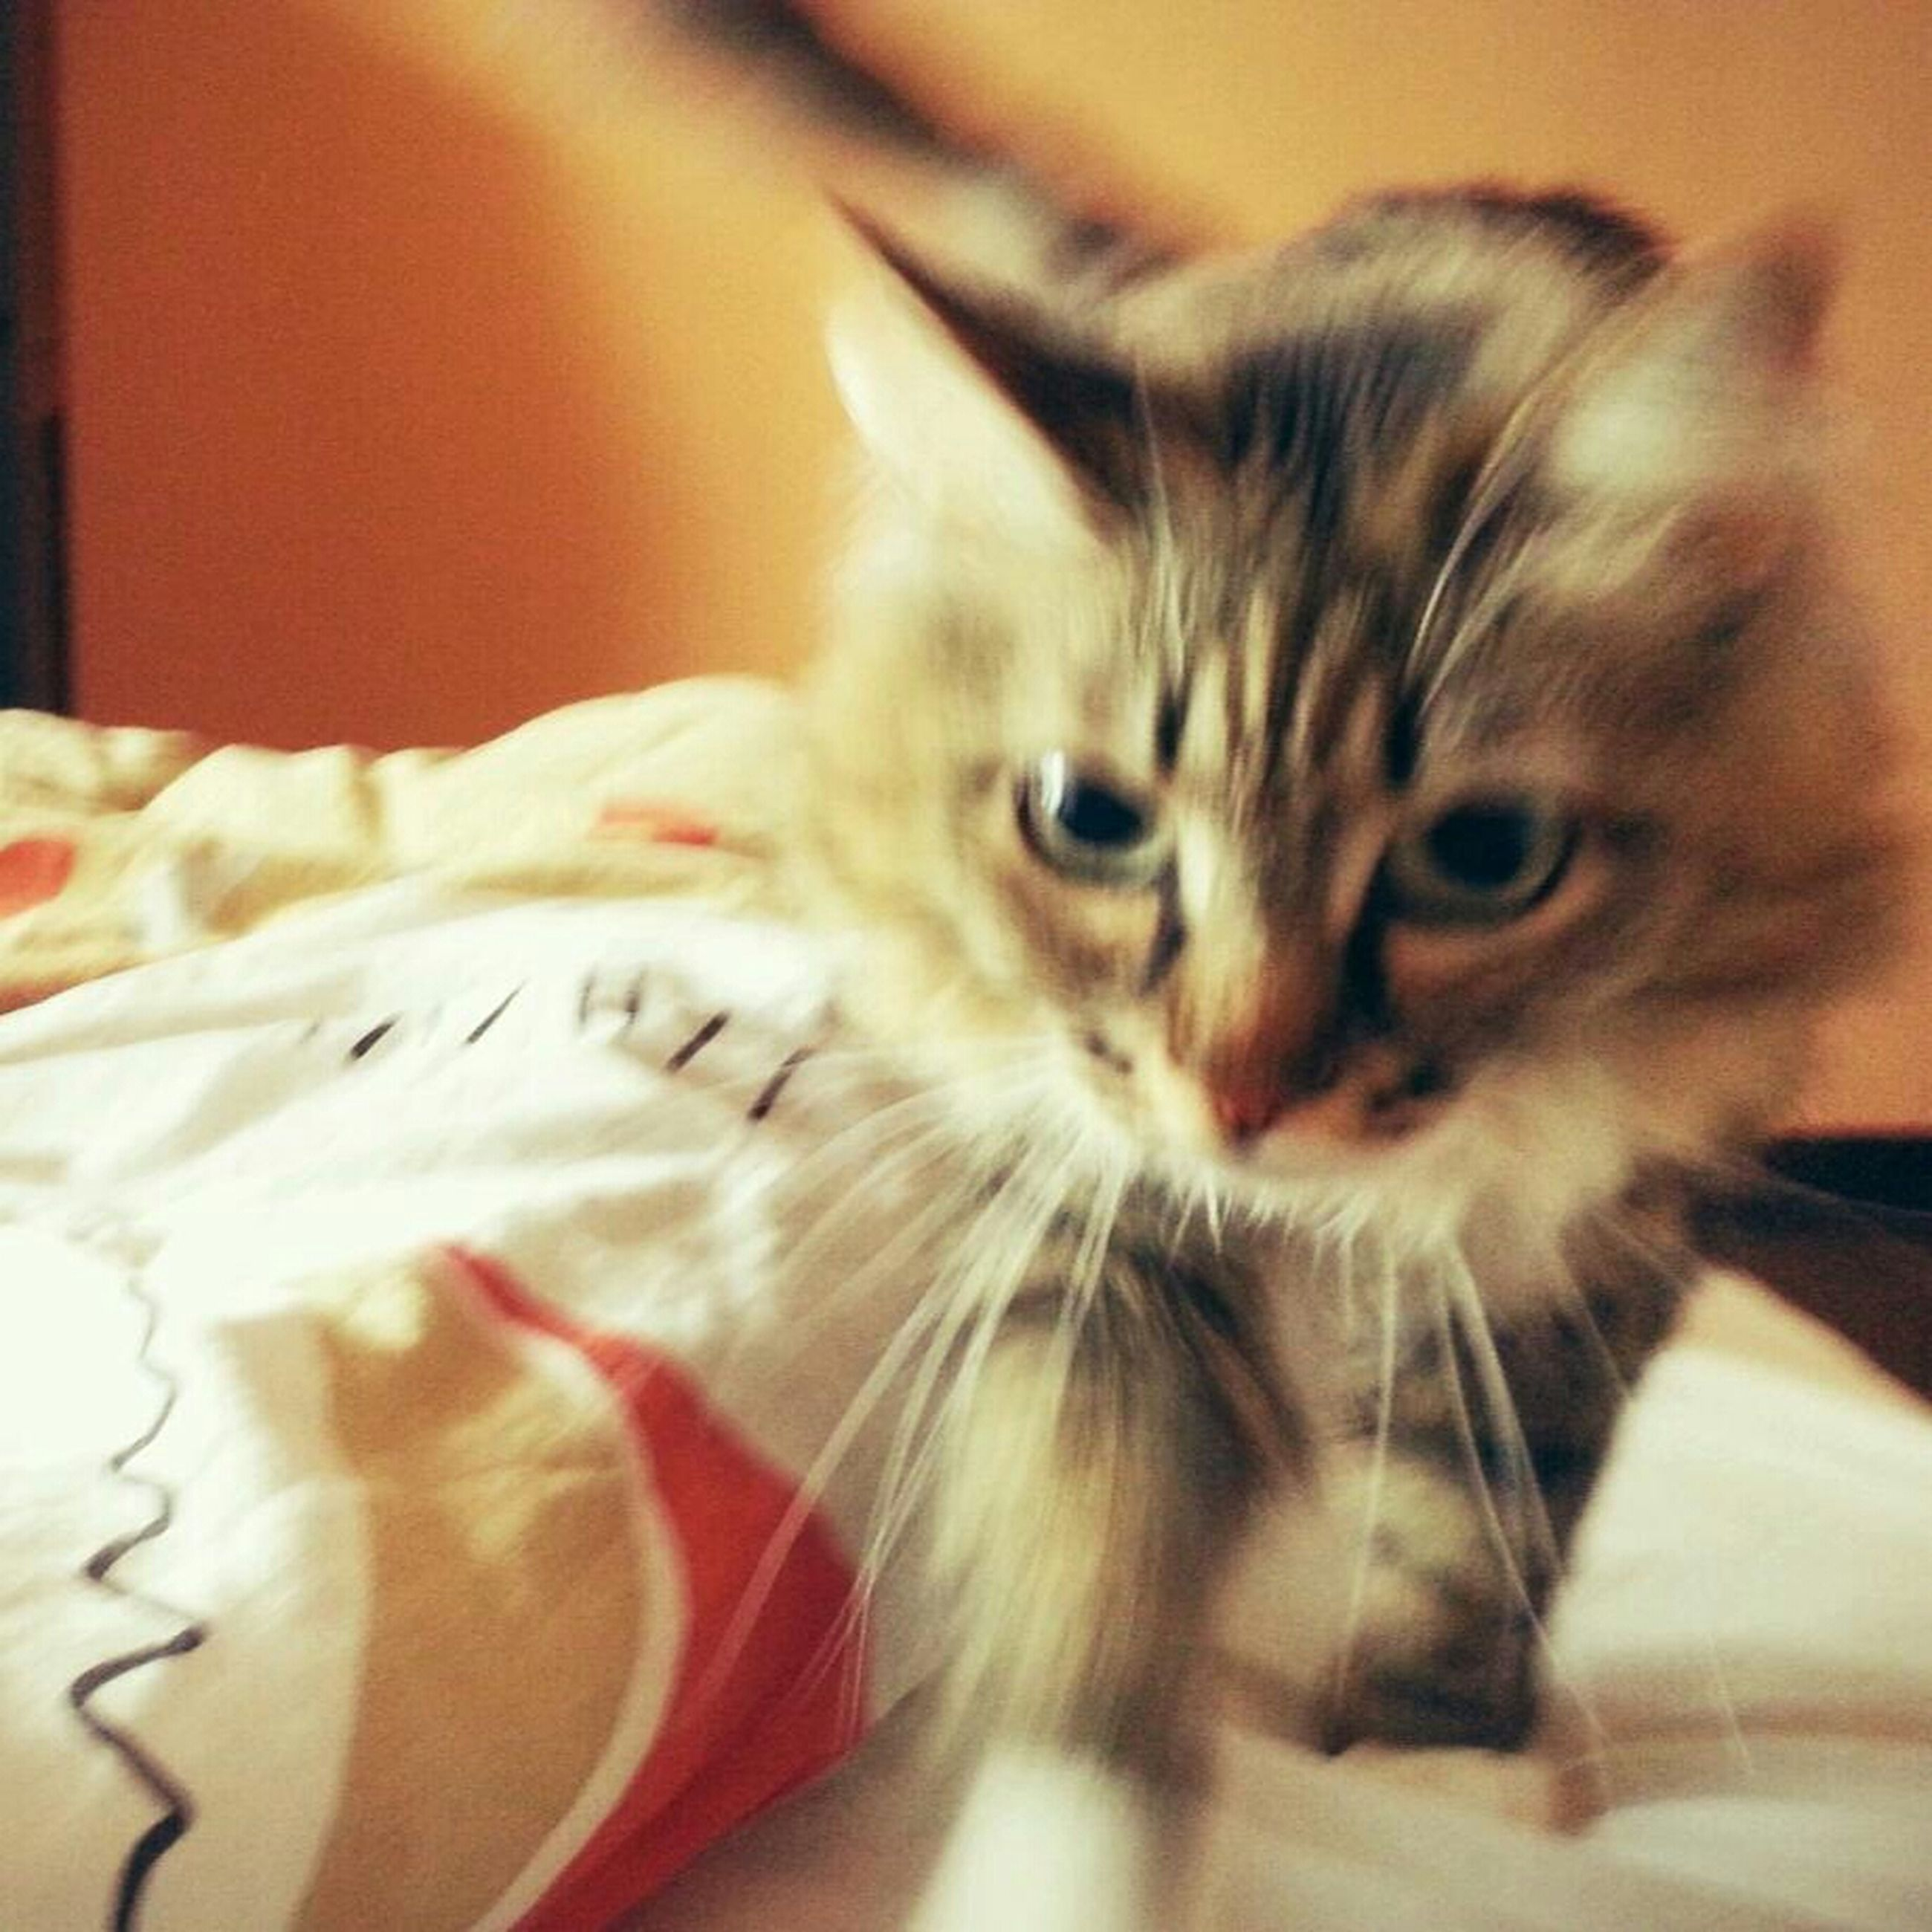 domestic cat, indoors, pets, animal themes, domestic animals, cat, one animal, feline, mammal, whisker, portrait, home interior, relaxation, looking at camera, close-up, focus on foreground, bed, selective focus, kitten, home